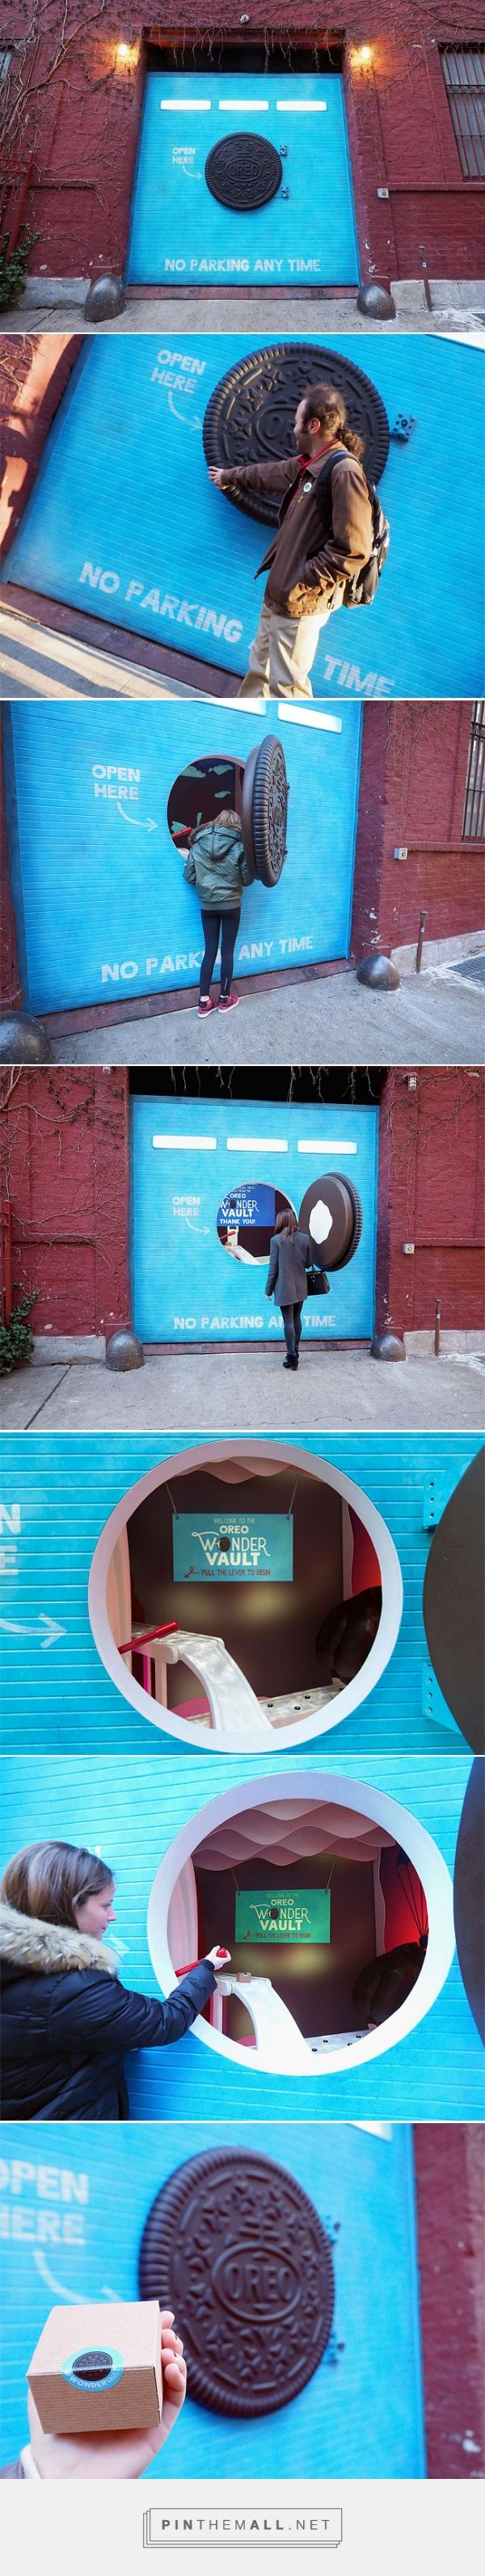 Inside The Oreo Wonder Vault That Popped Up In NYC  Don't really have a board for this but it is such clever advertising